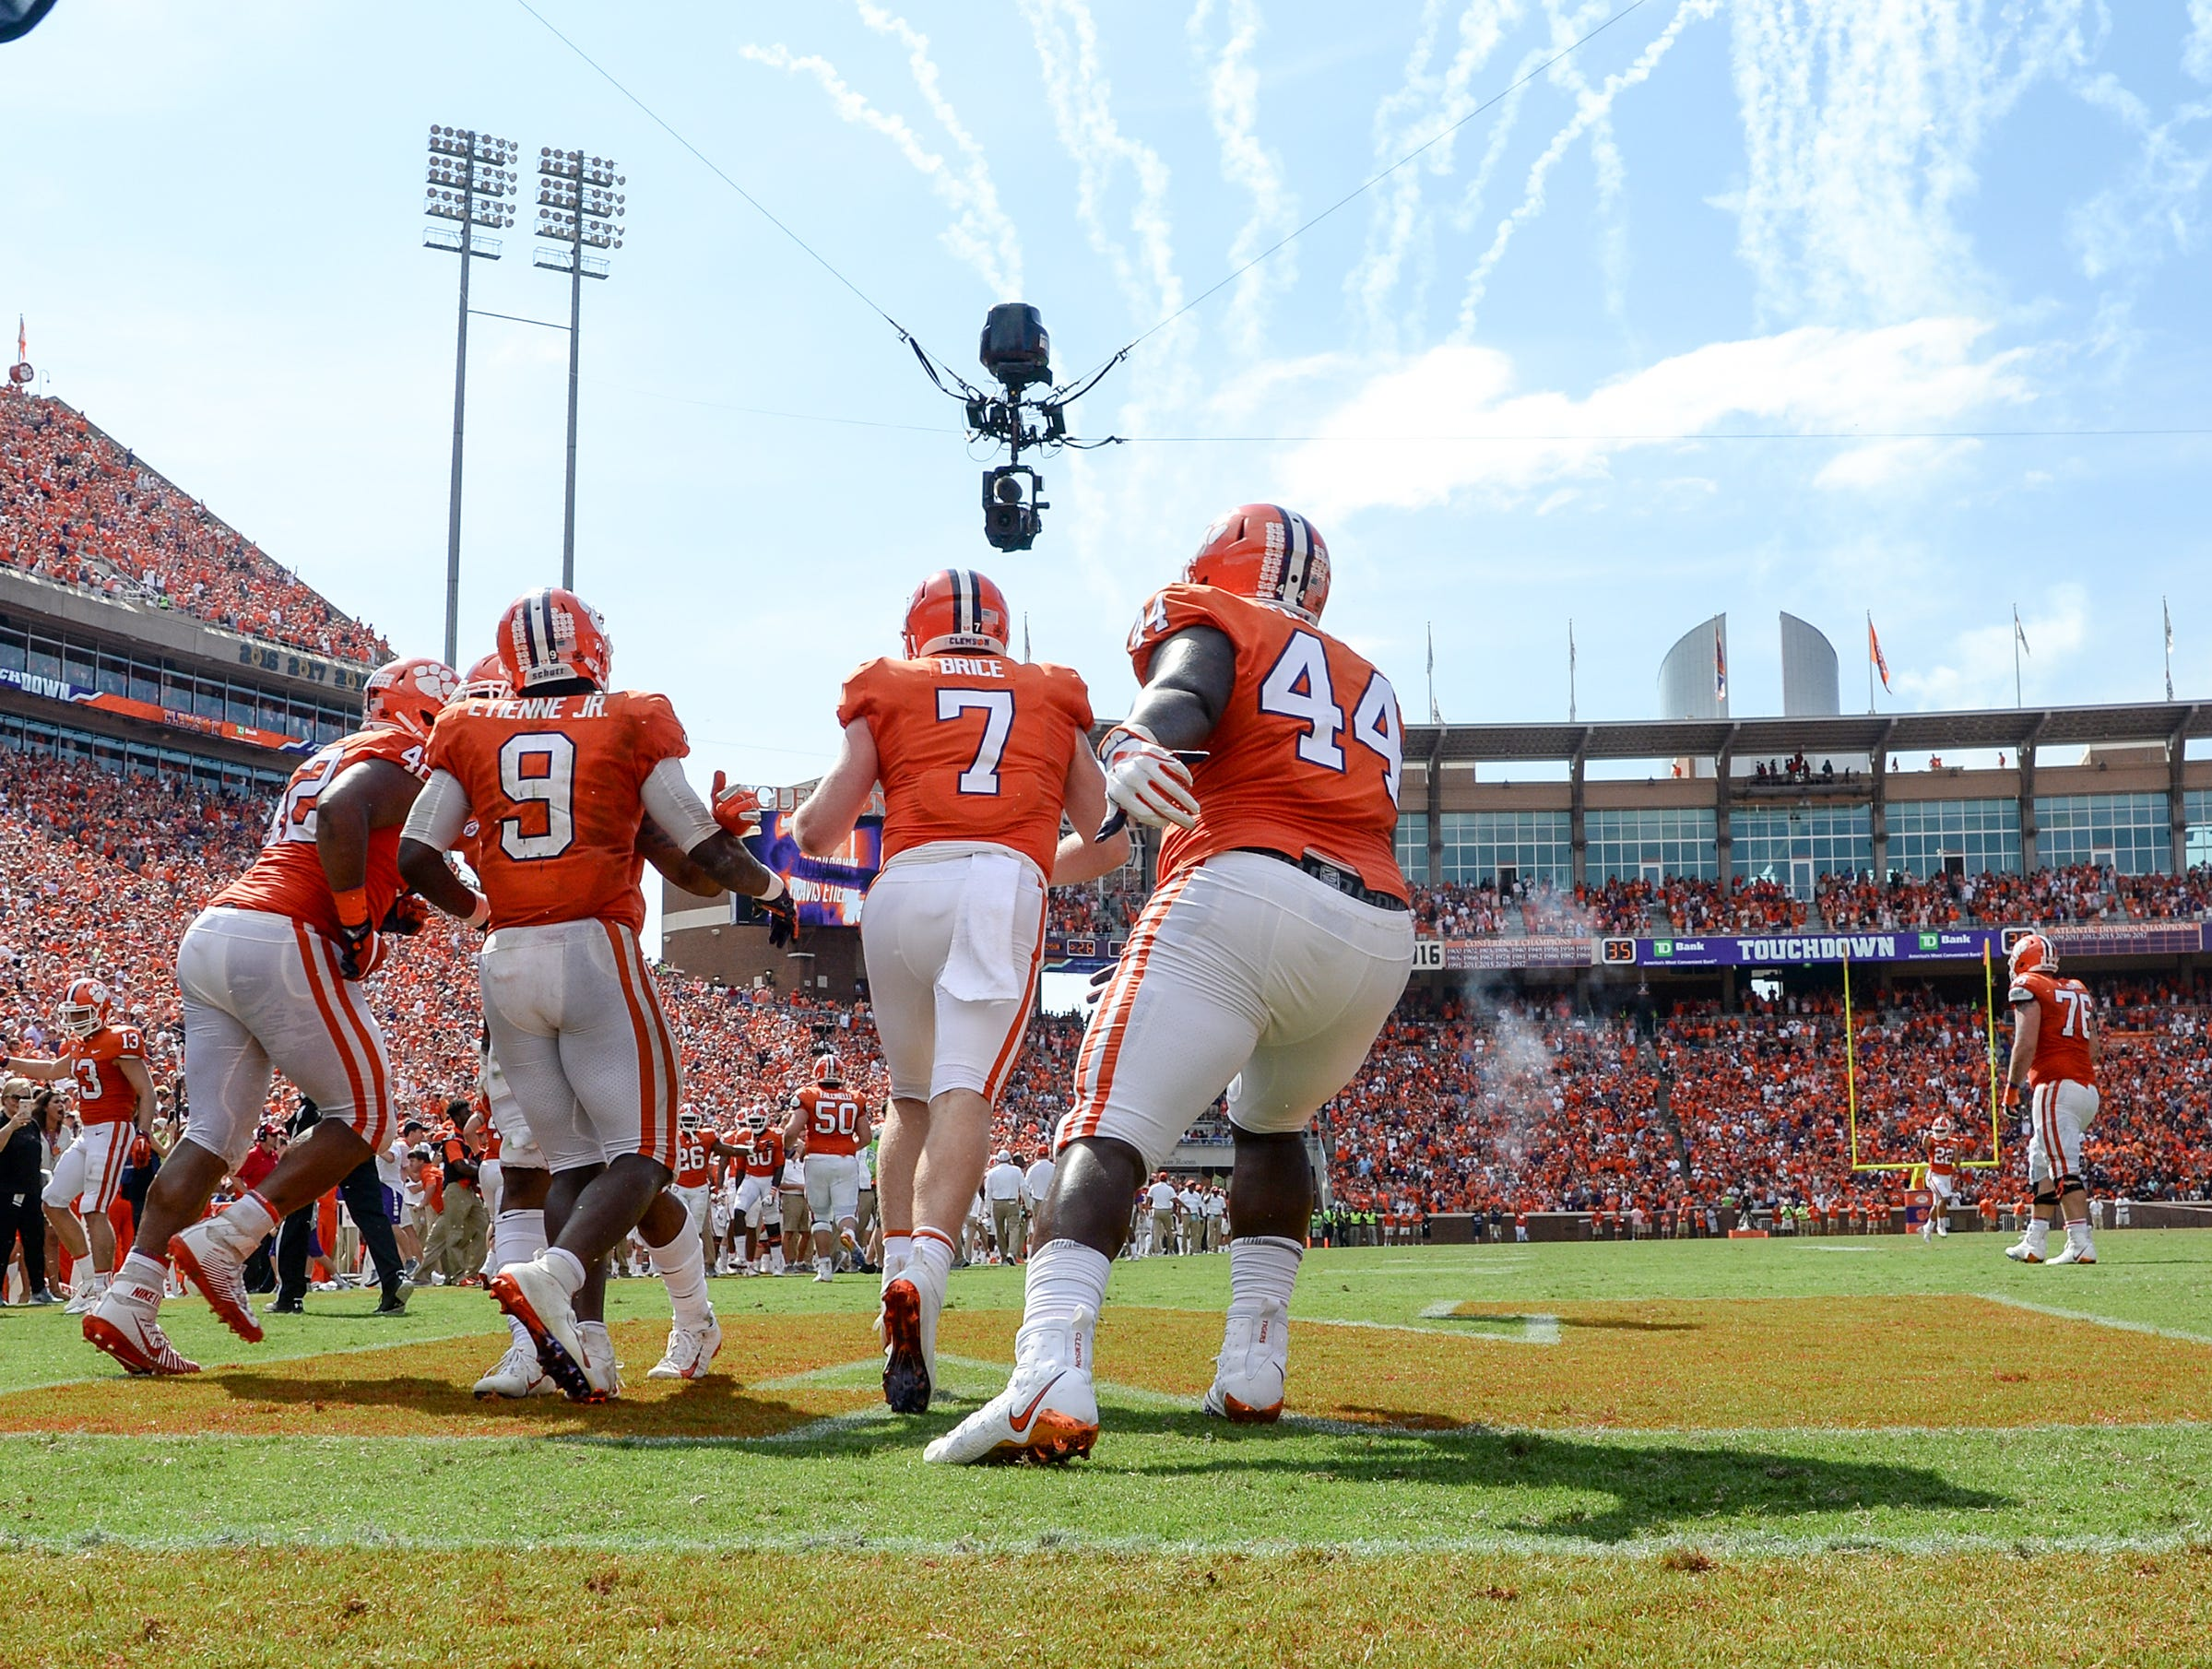 Clemson running back Travis Etienne (9) celebrates with teammates after the go-ahead touchdown against Syracuse during the fourth quarter in Memorial Stadium on Saturday, September 29, 2018.